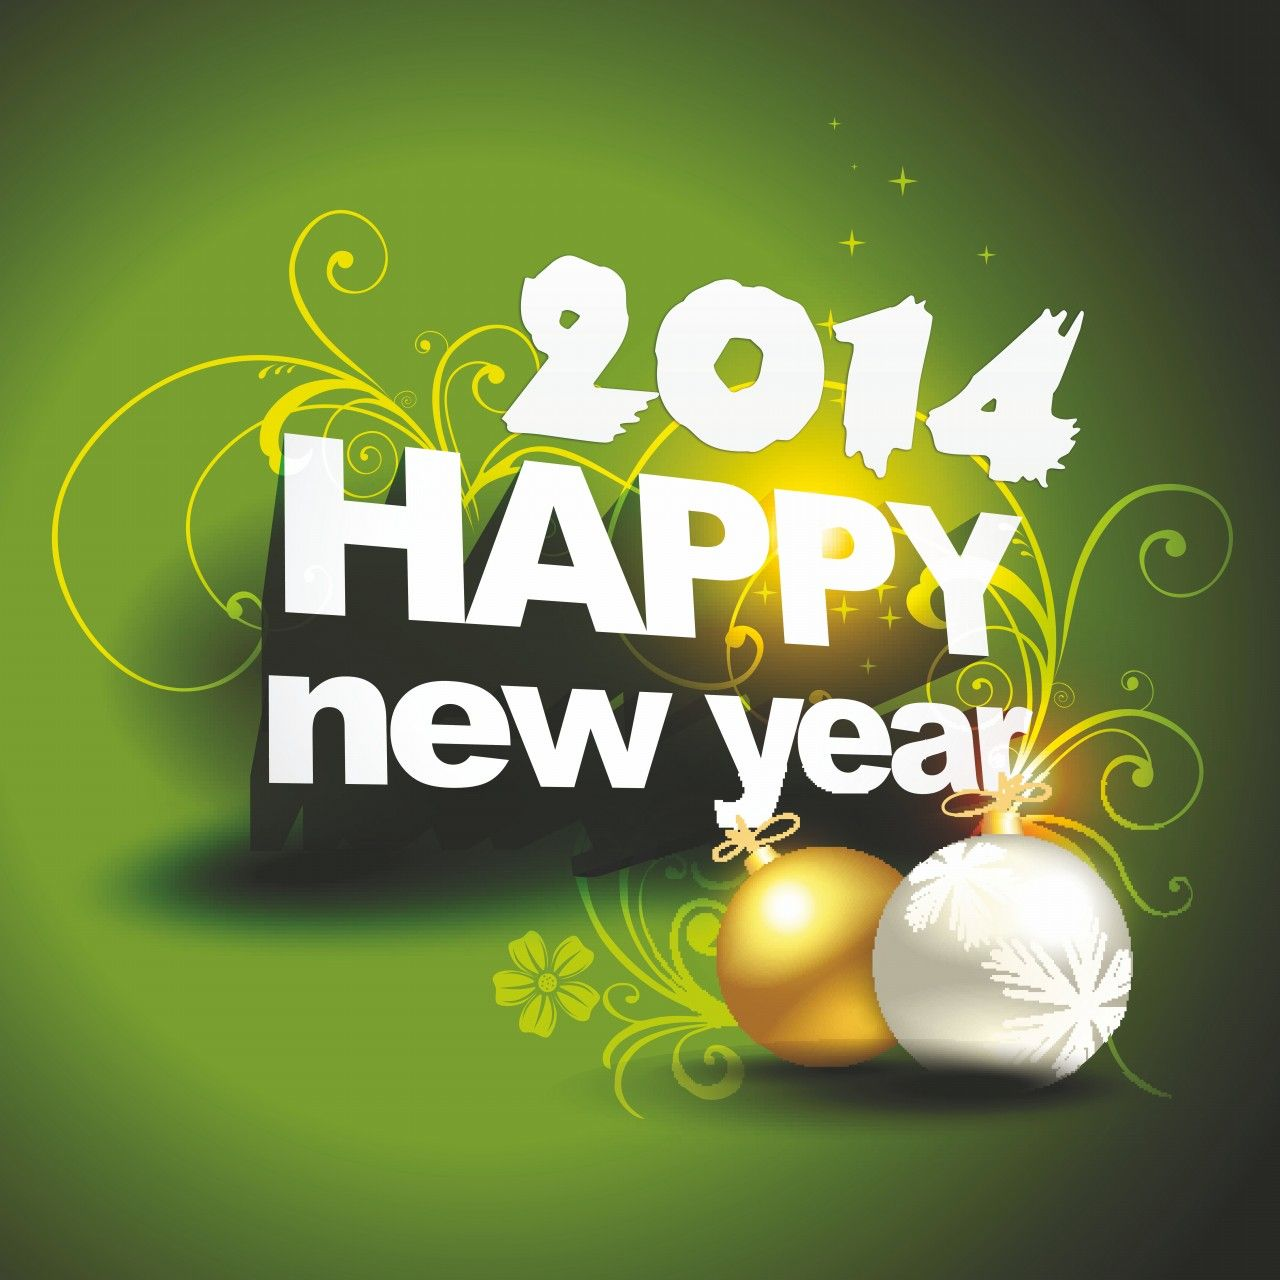 happy new year 2014 latest wallpapers